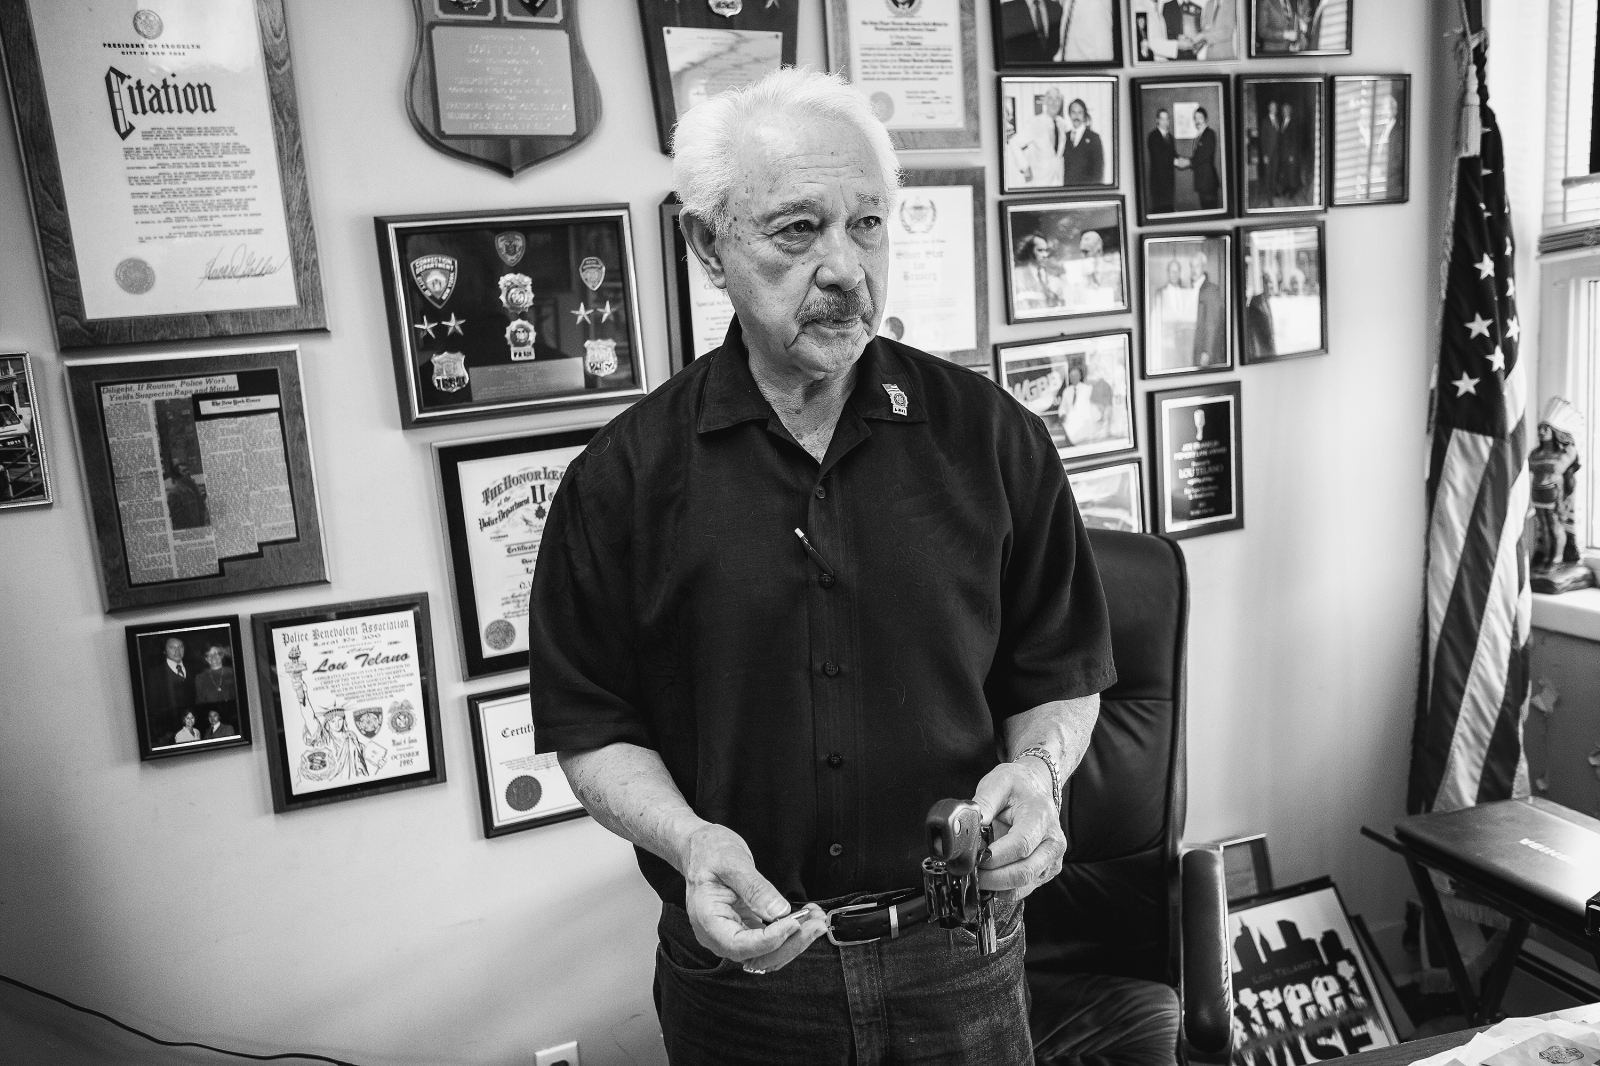 Photography image - Retired Detective Lou Telano (Tanto) loading his 28 Magnum revolver, that holds 8 rounds instead of the usual 6, he explains and he carries it in his pocket. Behind him are his memorabilia from his days in the NYPD. Tanto was his nickname because he looks Native American. (Kevin C. Downs/Agence Cosmos)